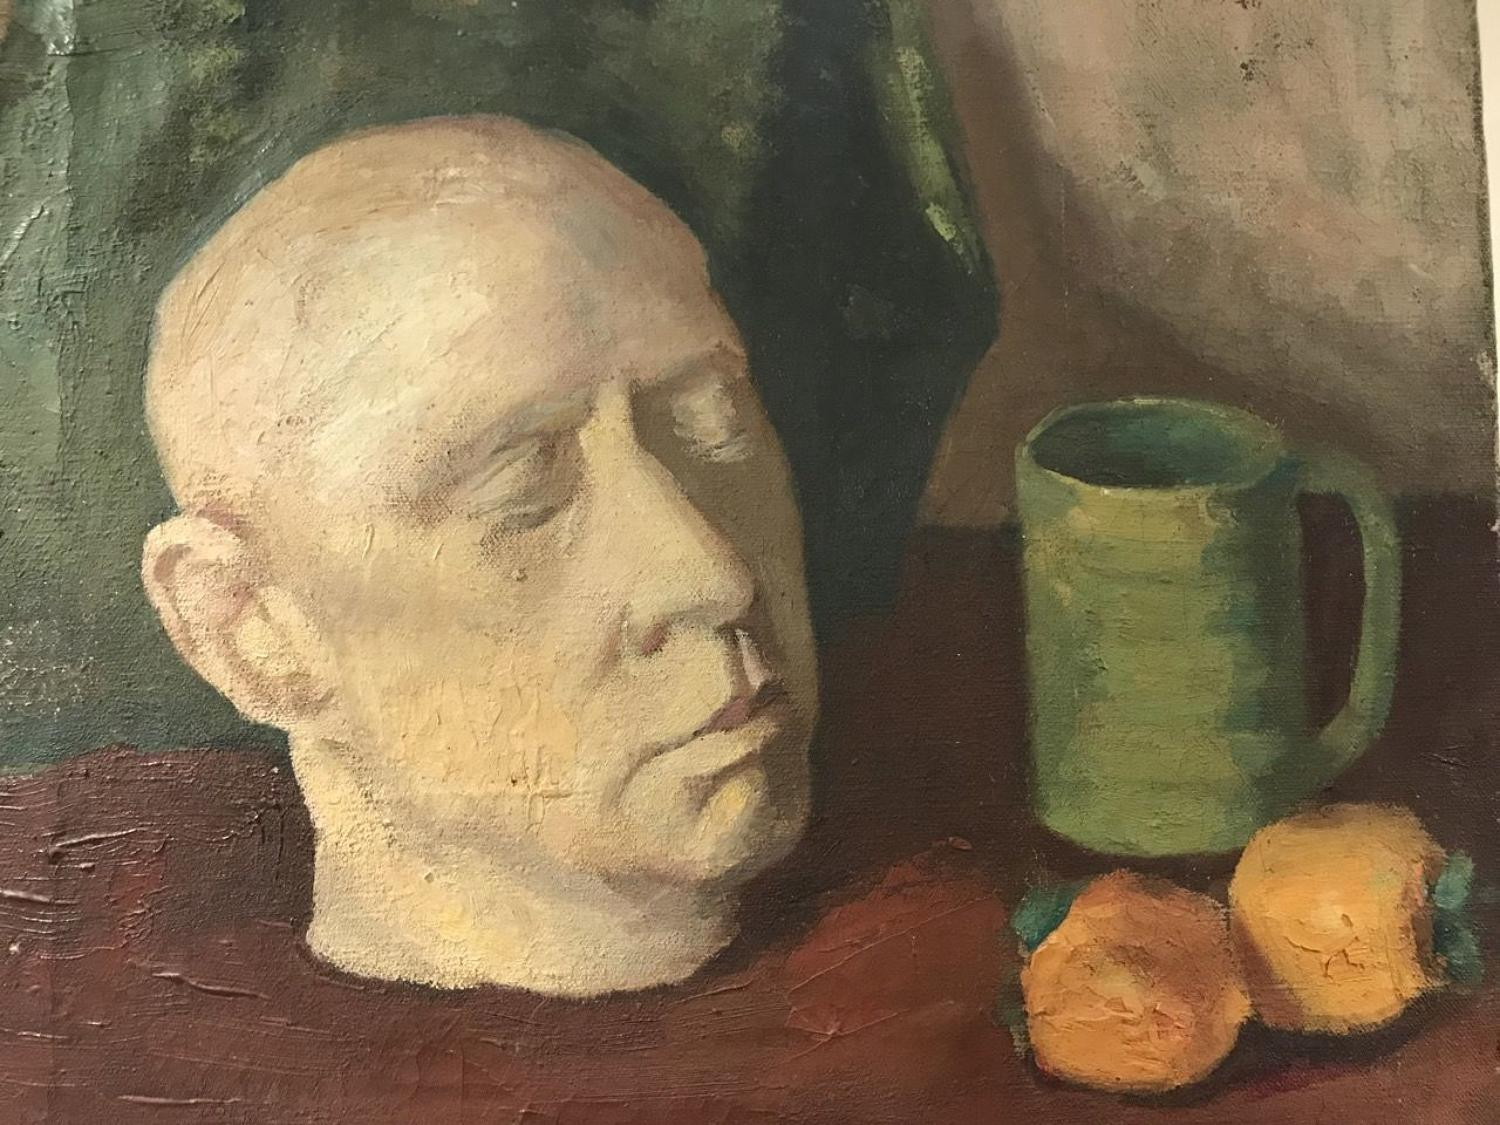 DEATH MASK OIL PAINTING